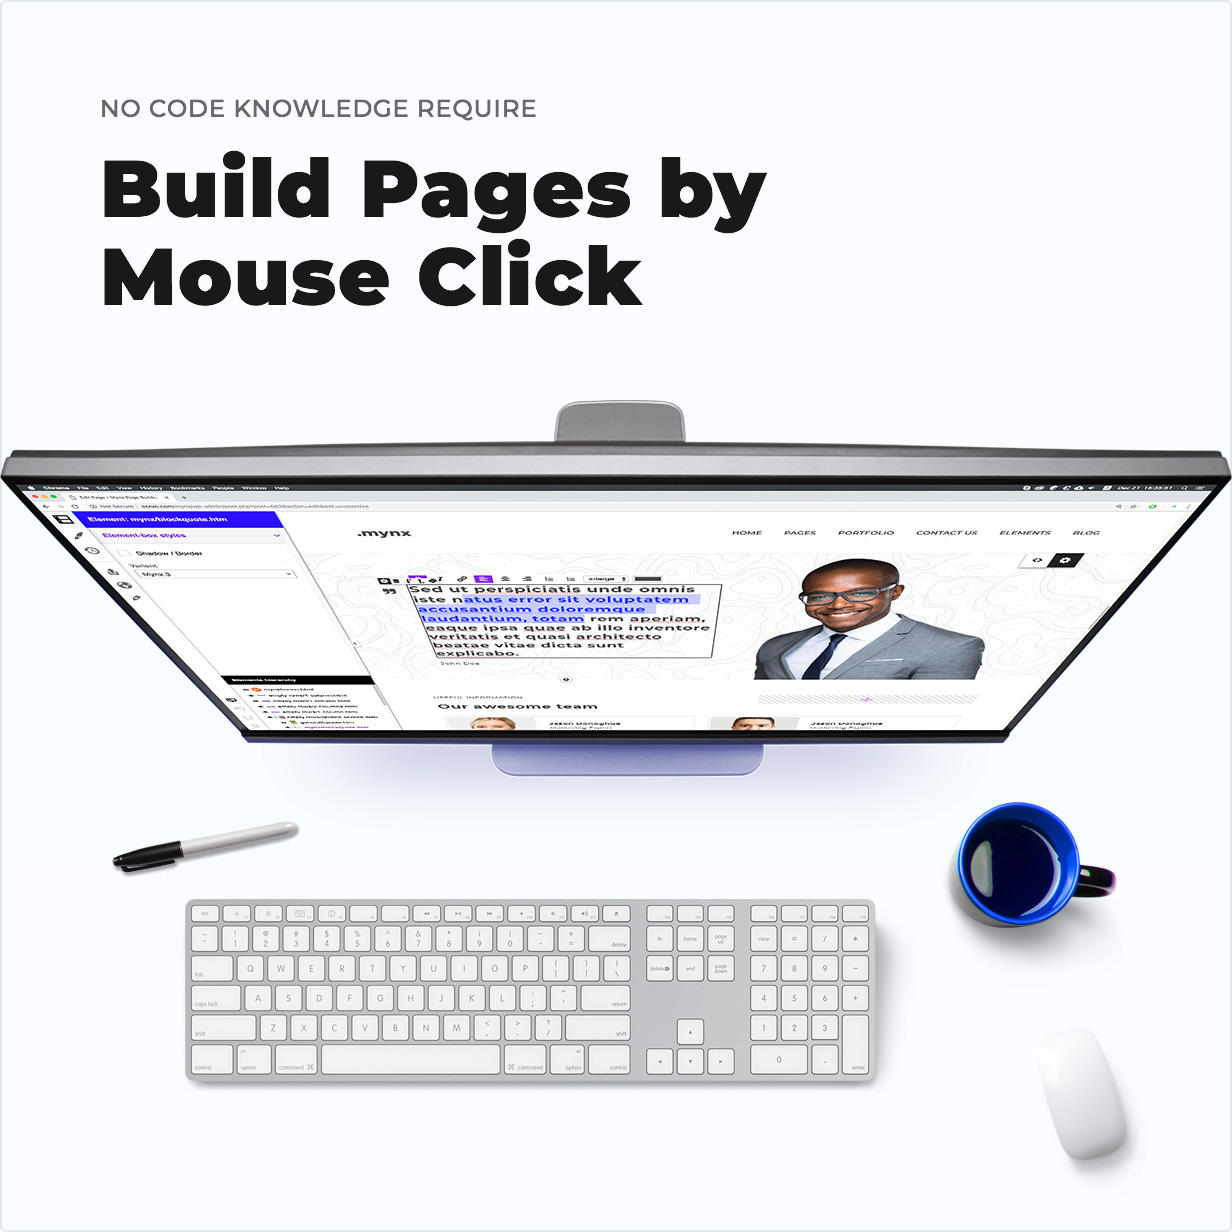 No Code Knowledge Require – Build Pages by Mouse Click